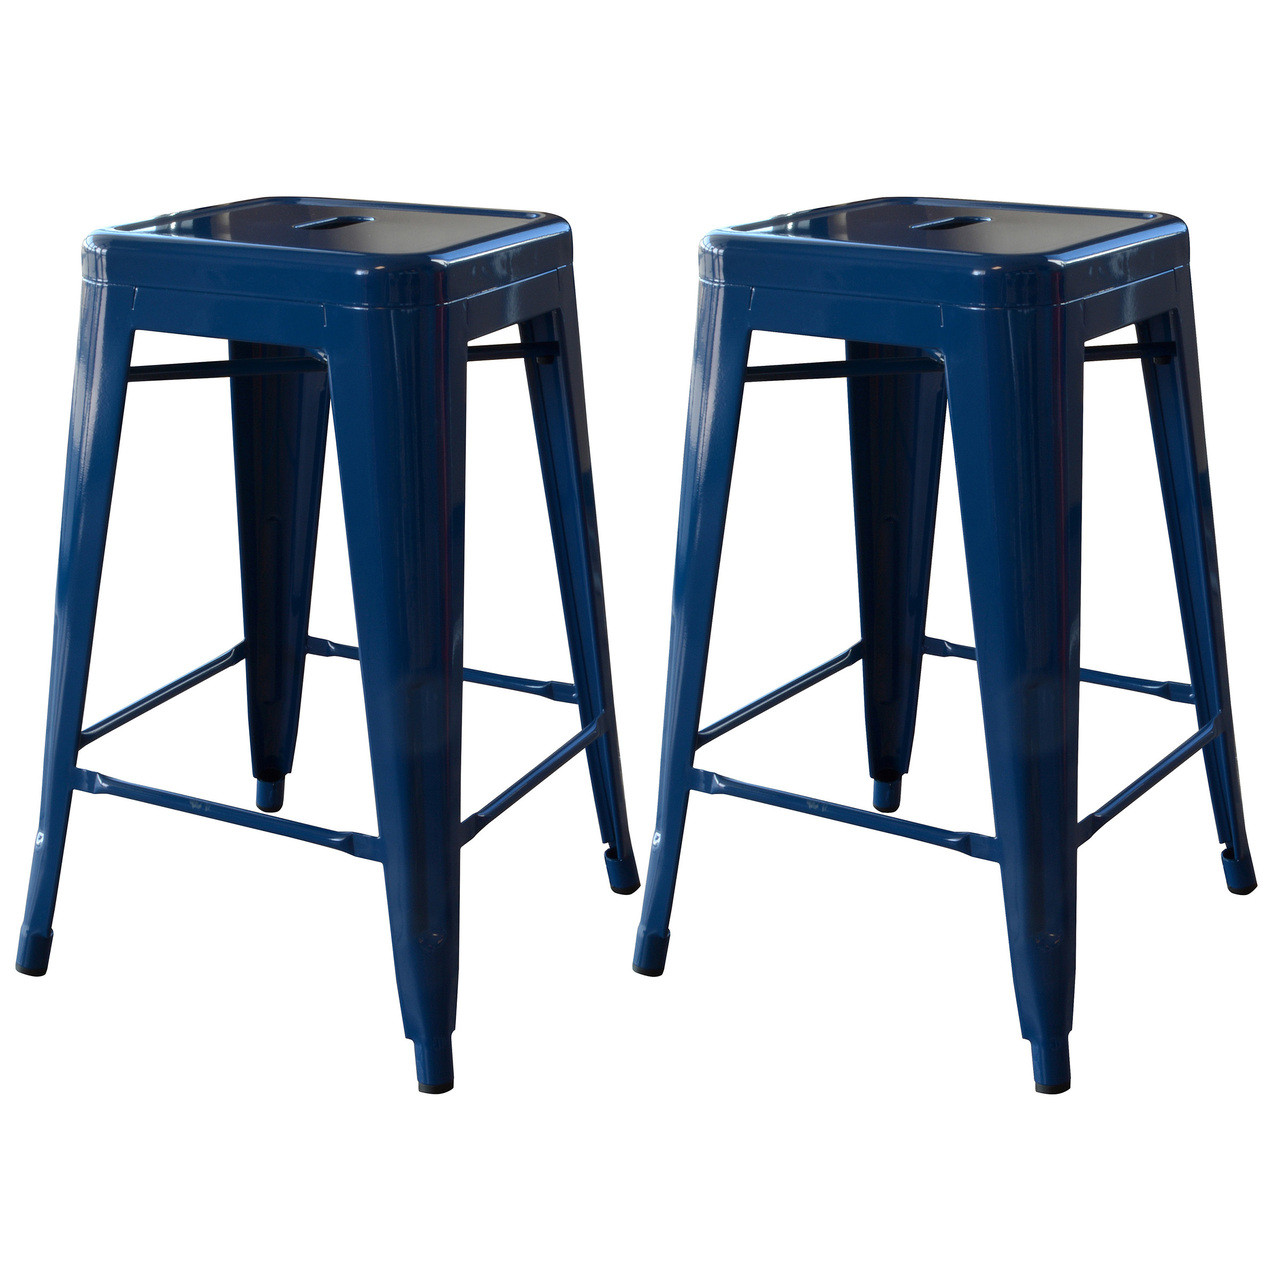 Amerihome Bs24blue 24 Inch Blue Metal Bar Stool 2 Piece Jb Tools